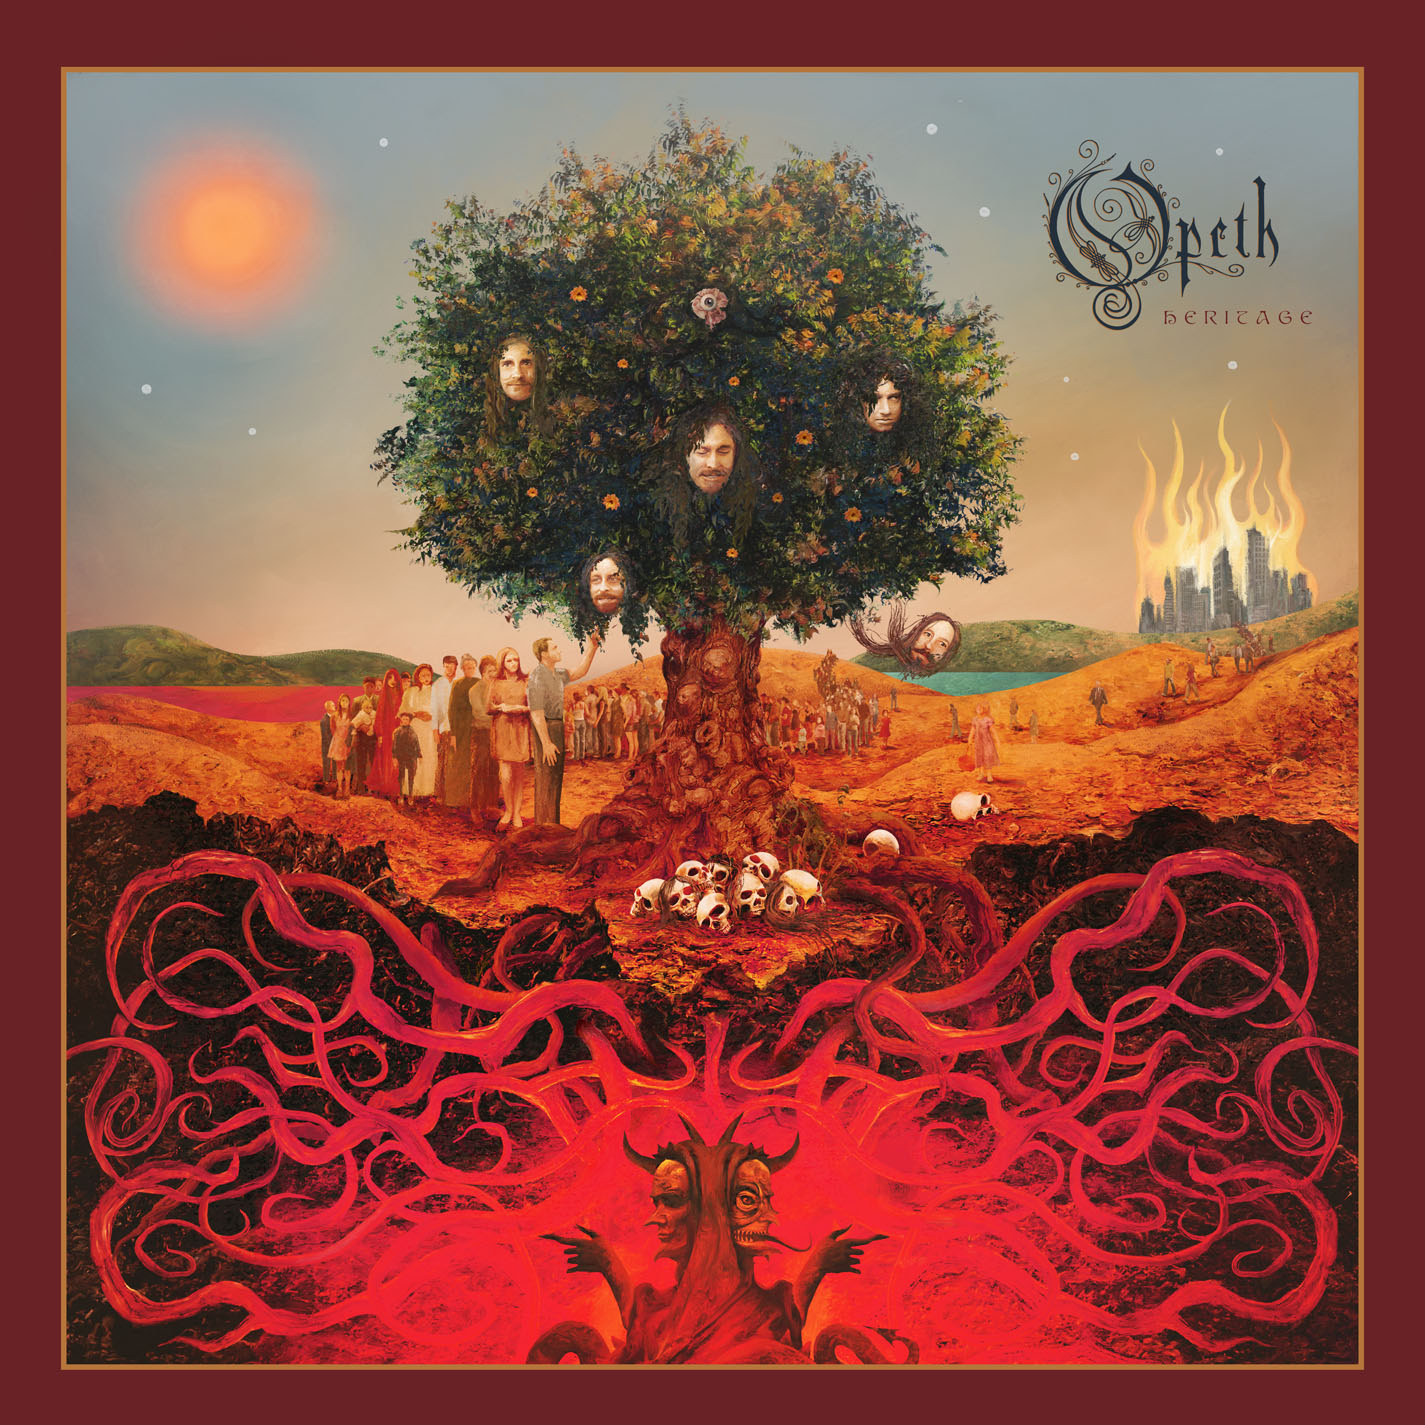 Opeth Heritage Artwork